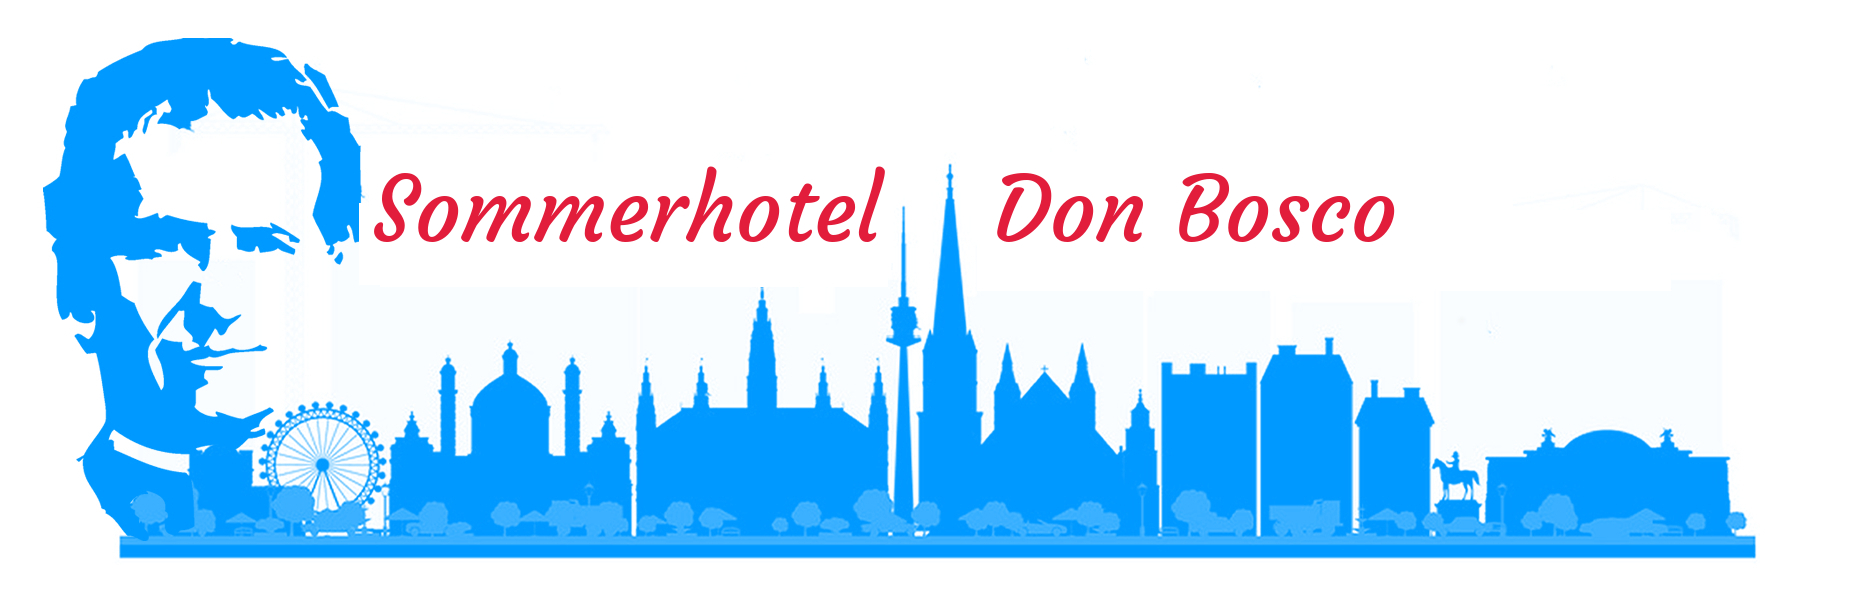 Sommerhotel Don Bosco Logo